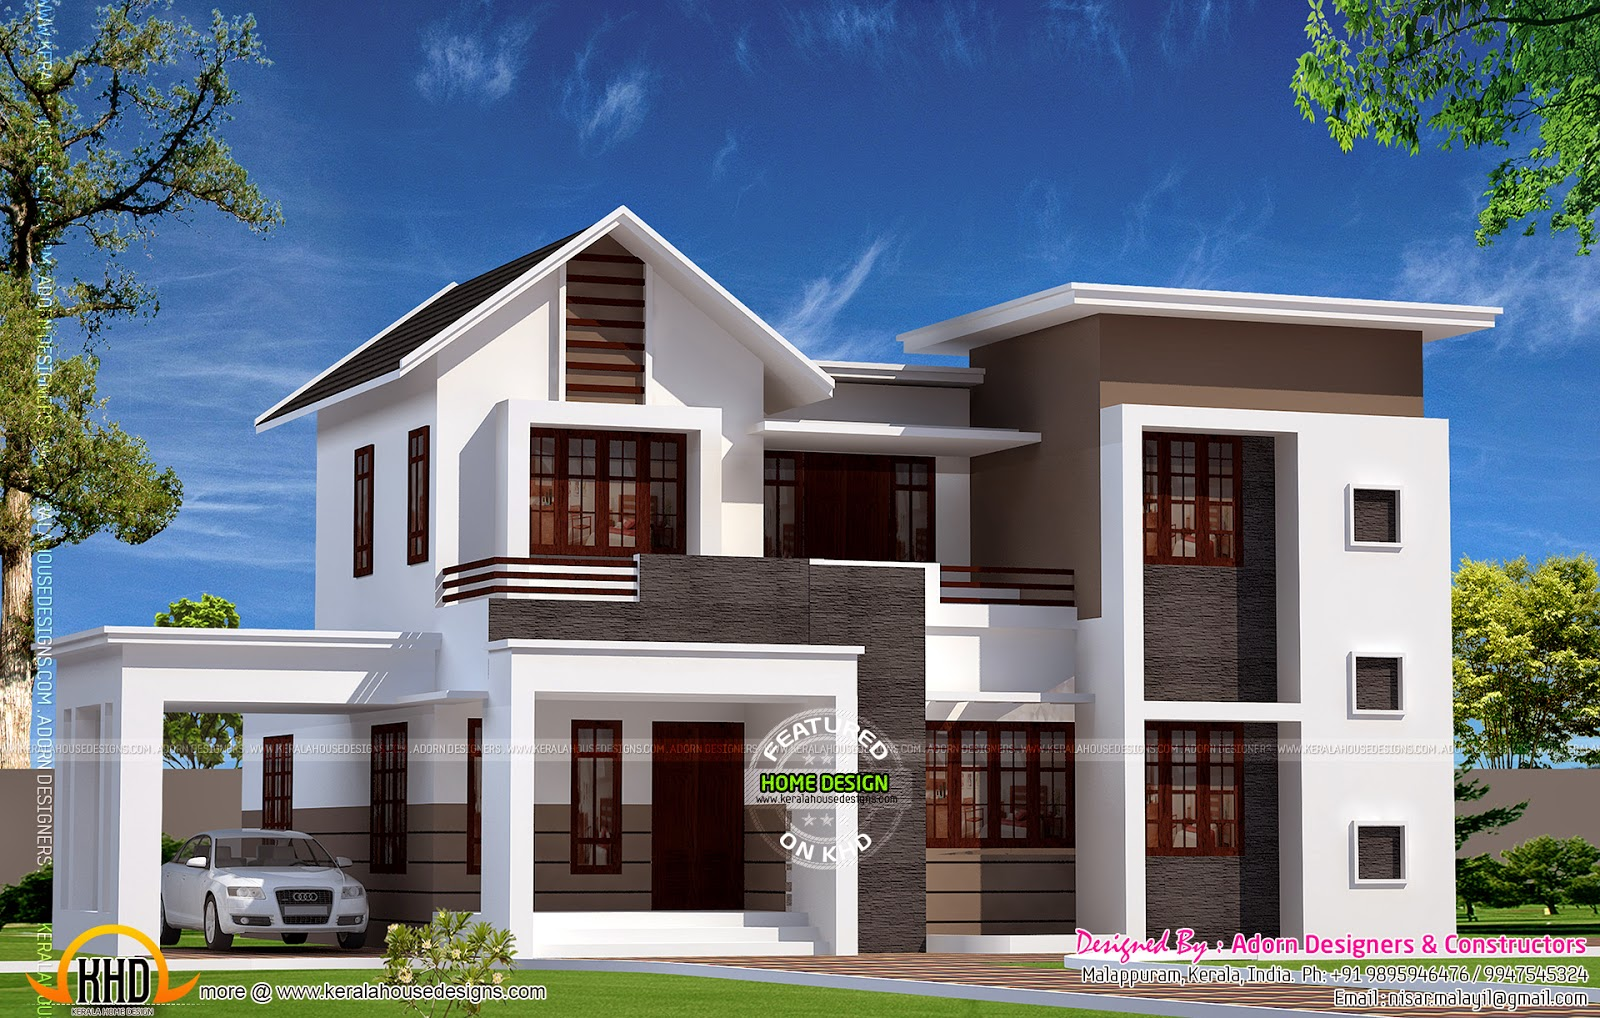 September 2014 kerala home design and floor plans - Design house ...